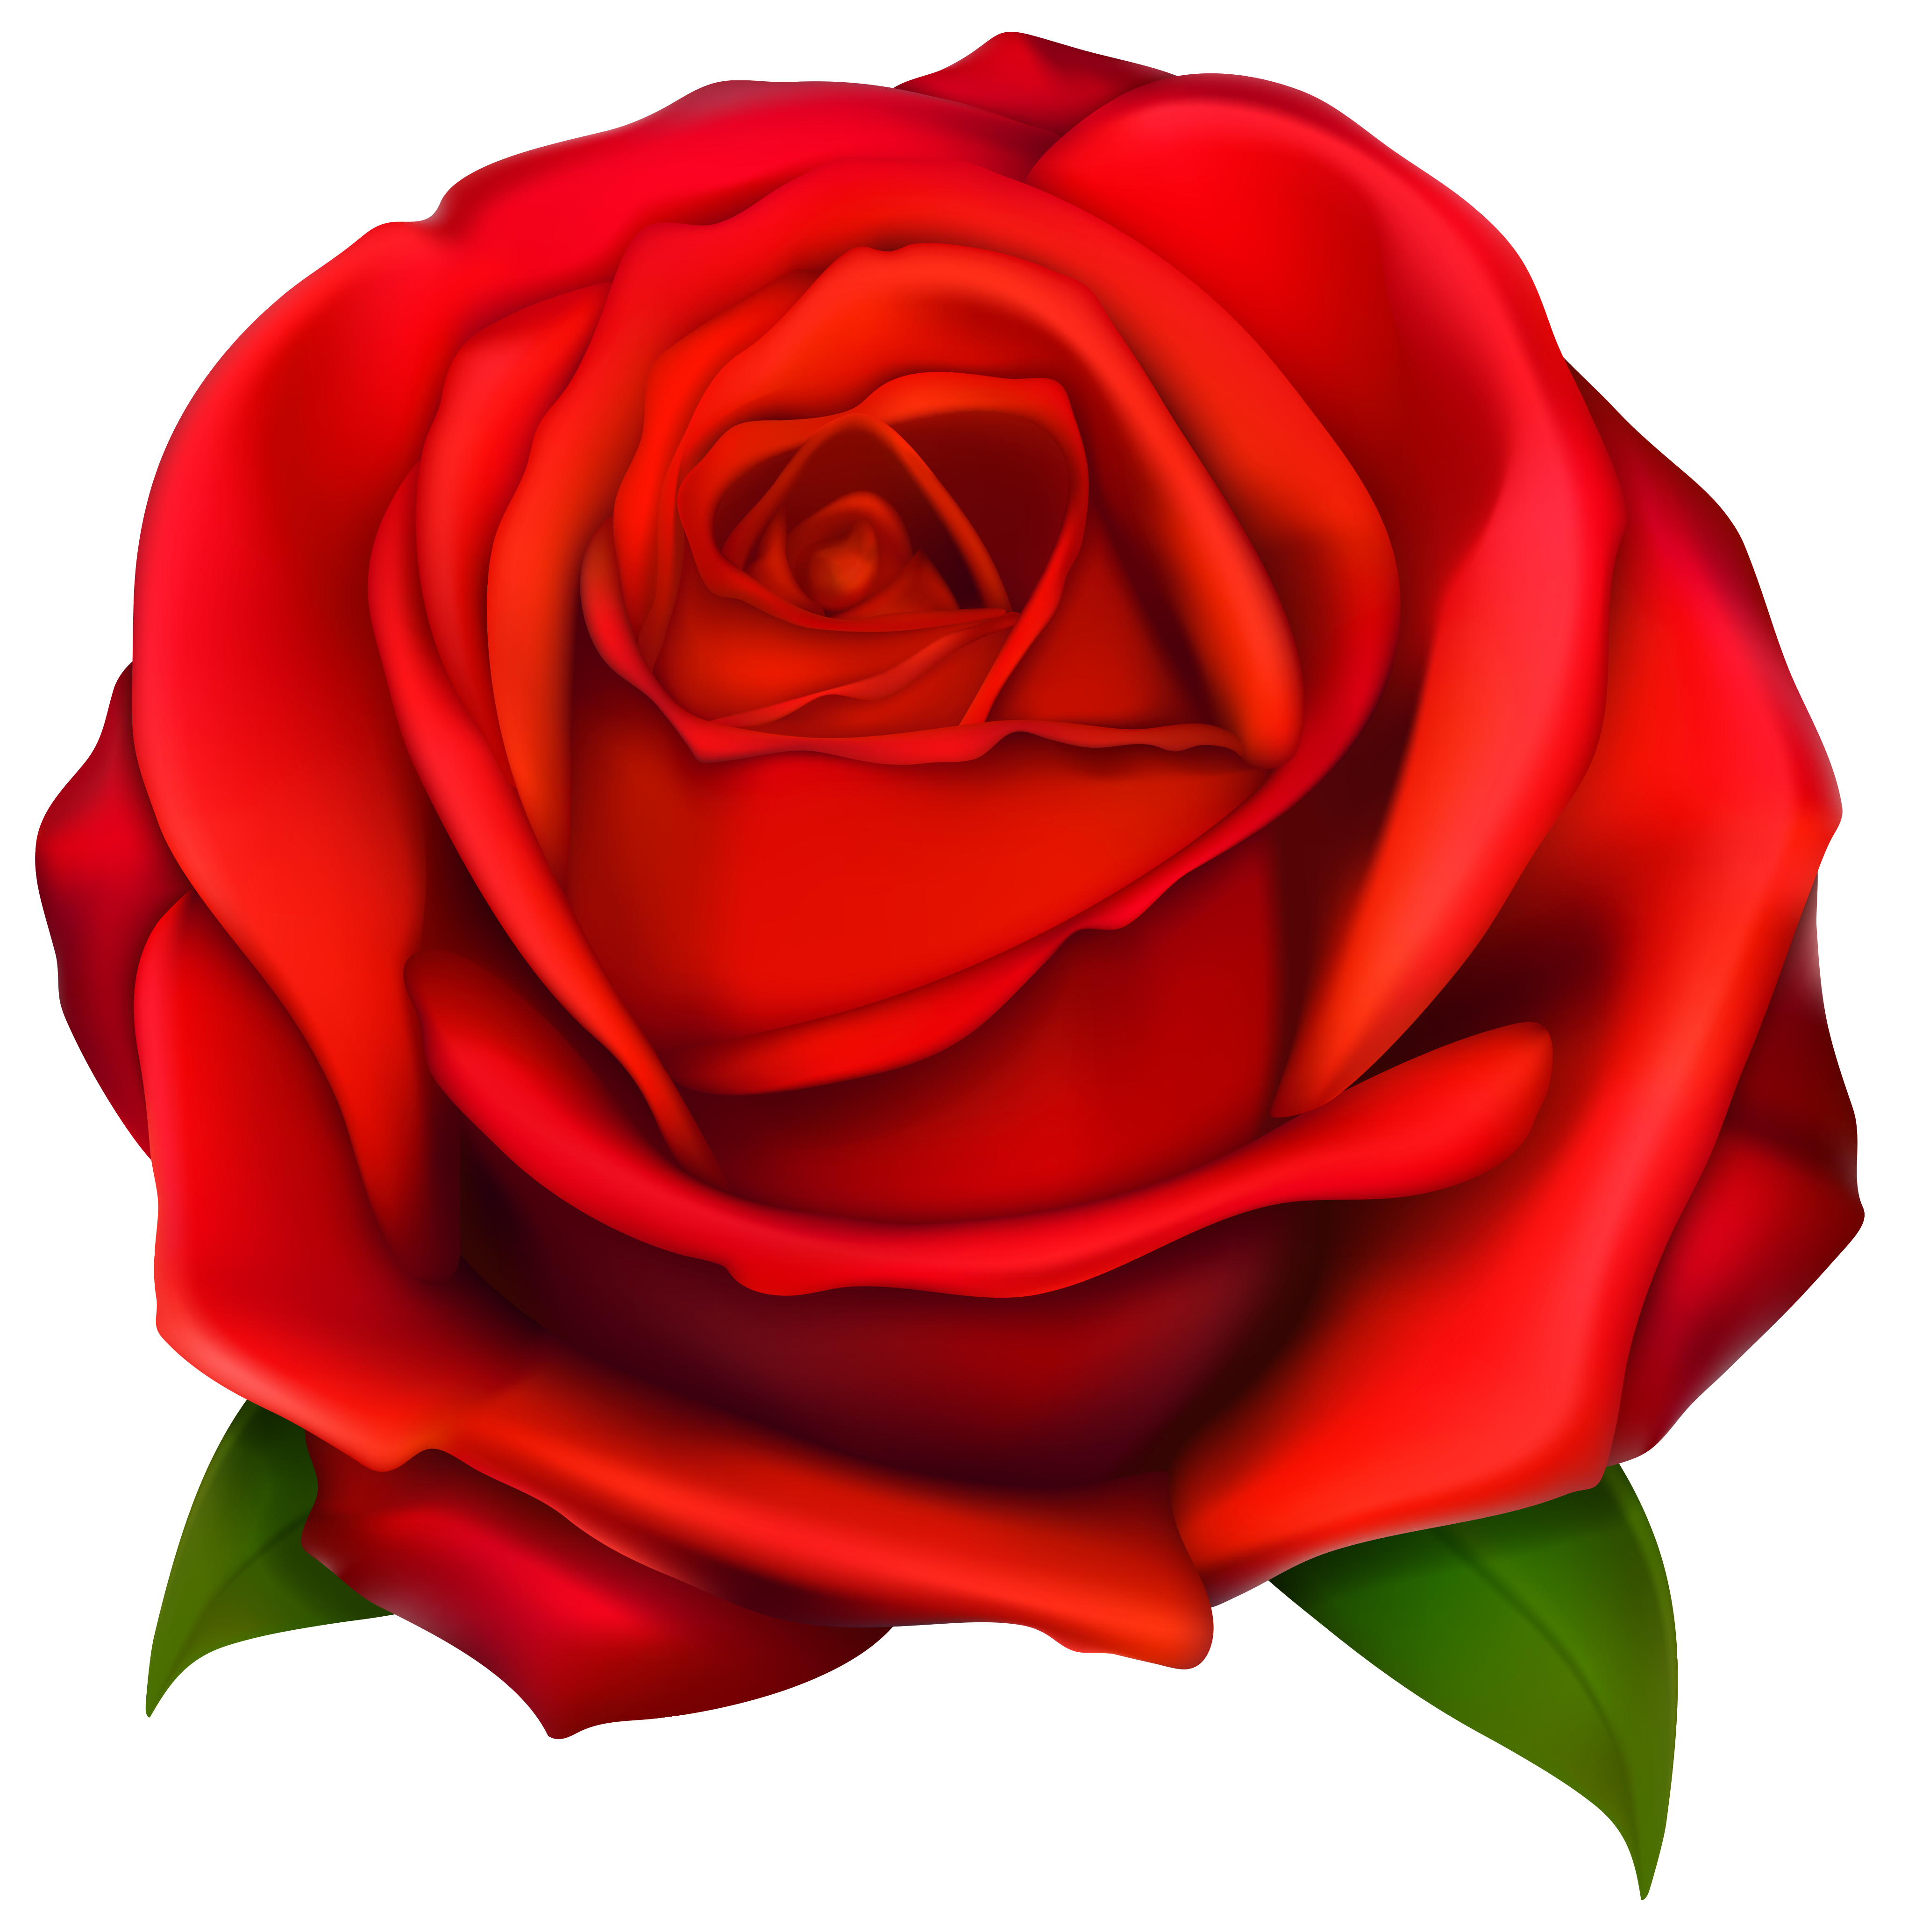 Image of clip art red rose 2 red roses c-Image of clip art red rose 2 red roses clip art images free-3